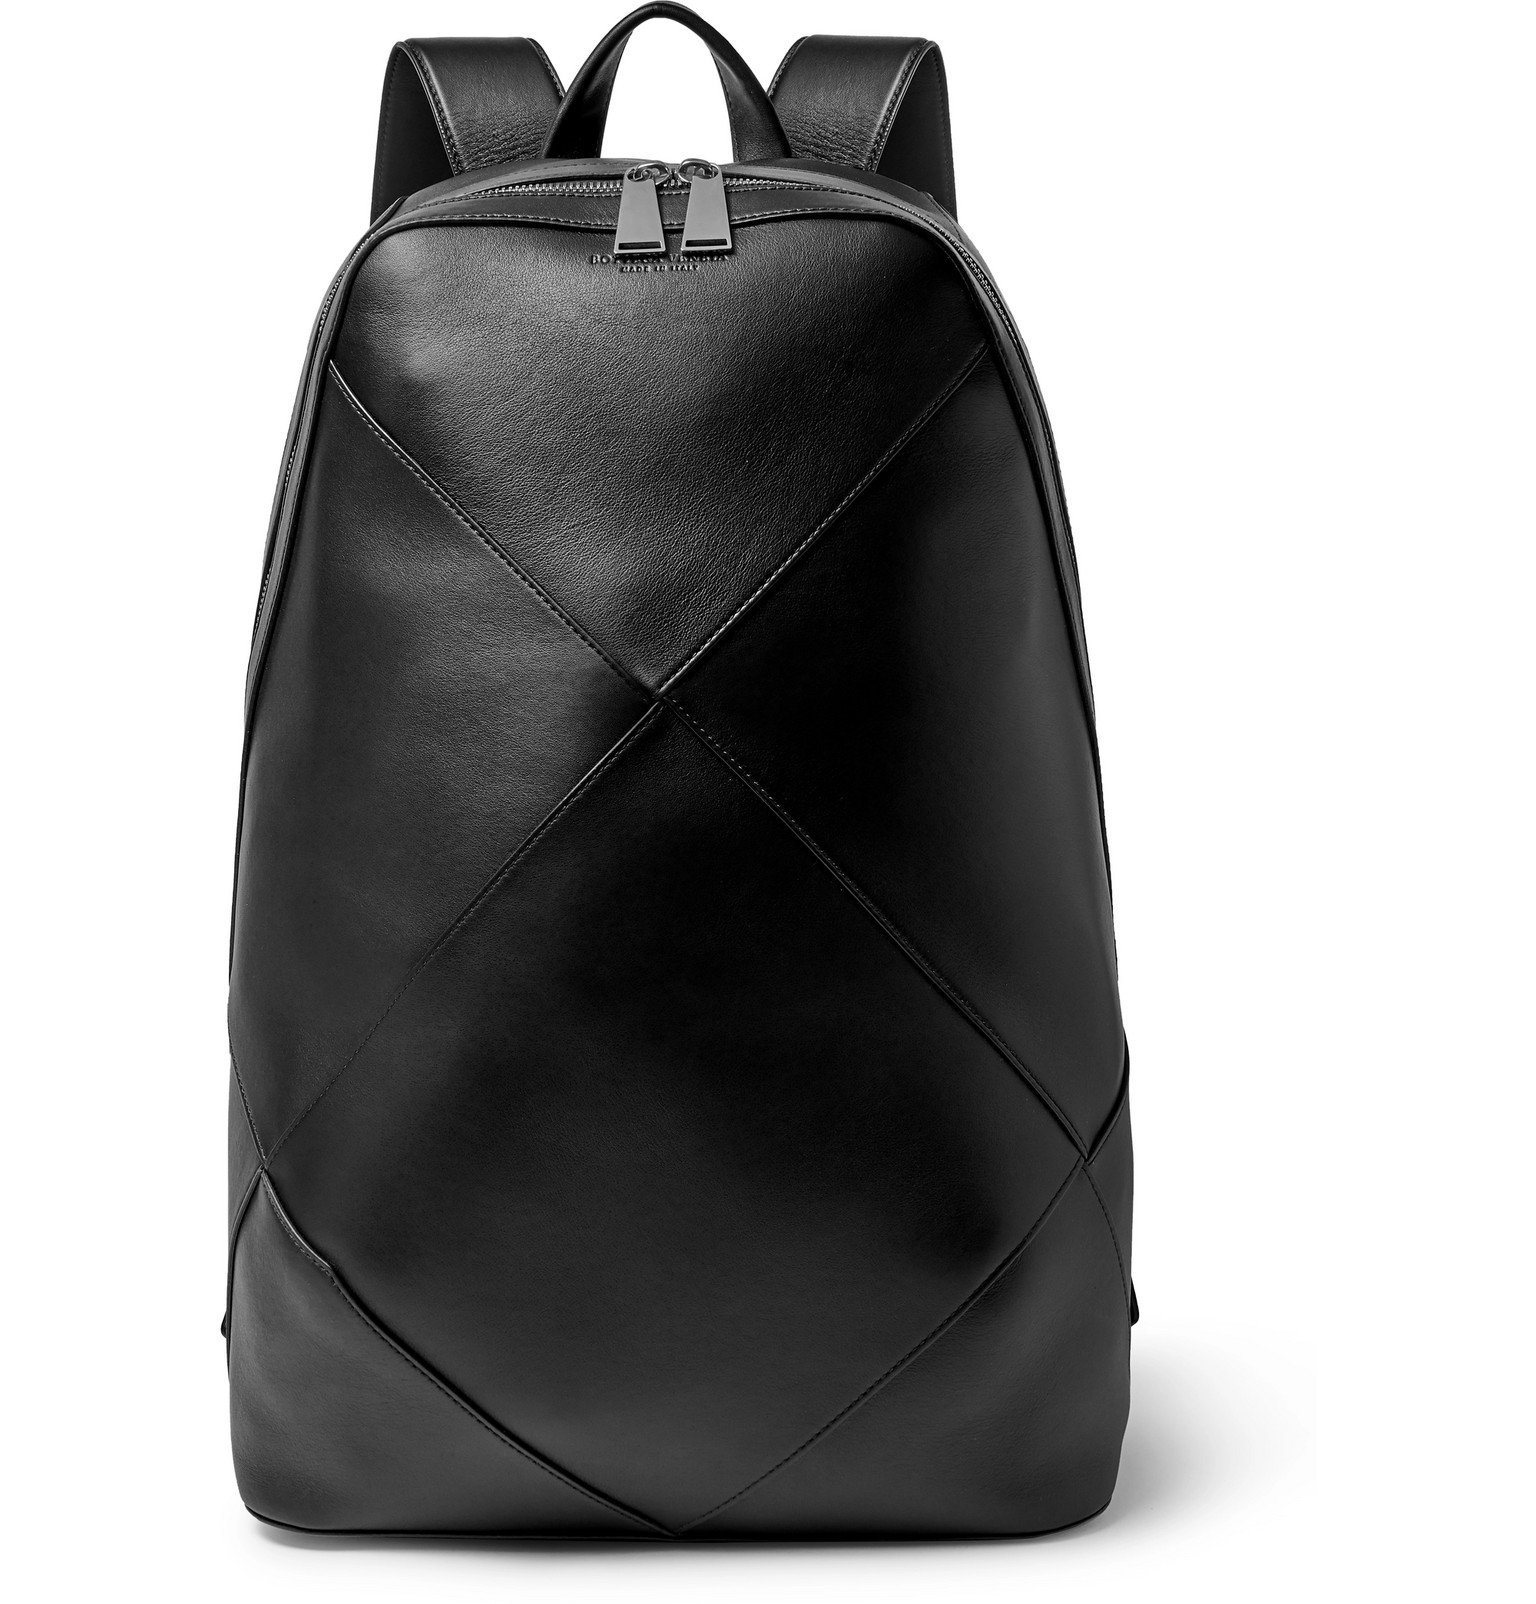 Bottega Veneta - Intrecciato Leather Backpack - Black